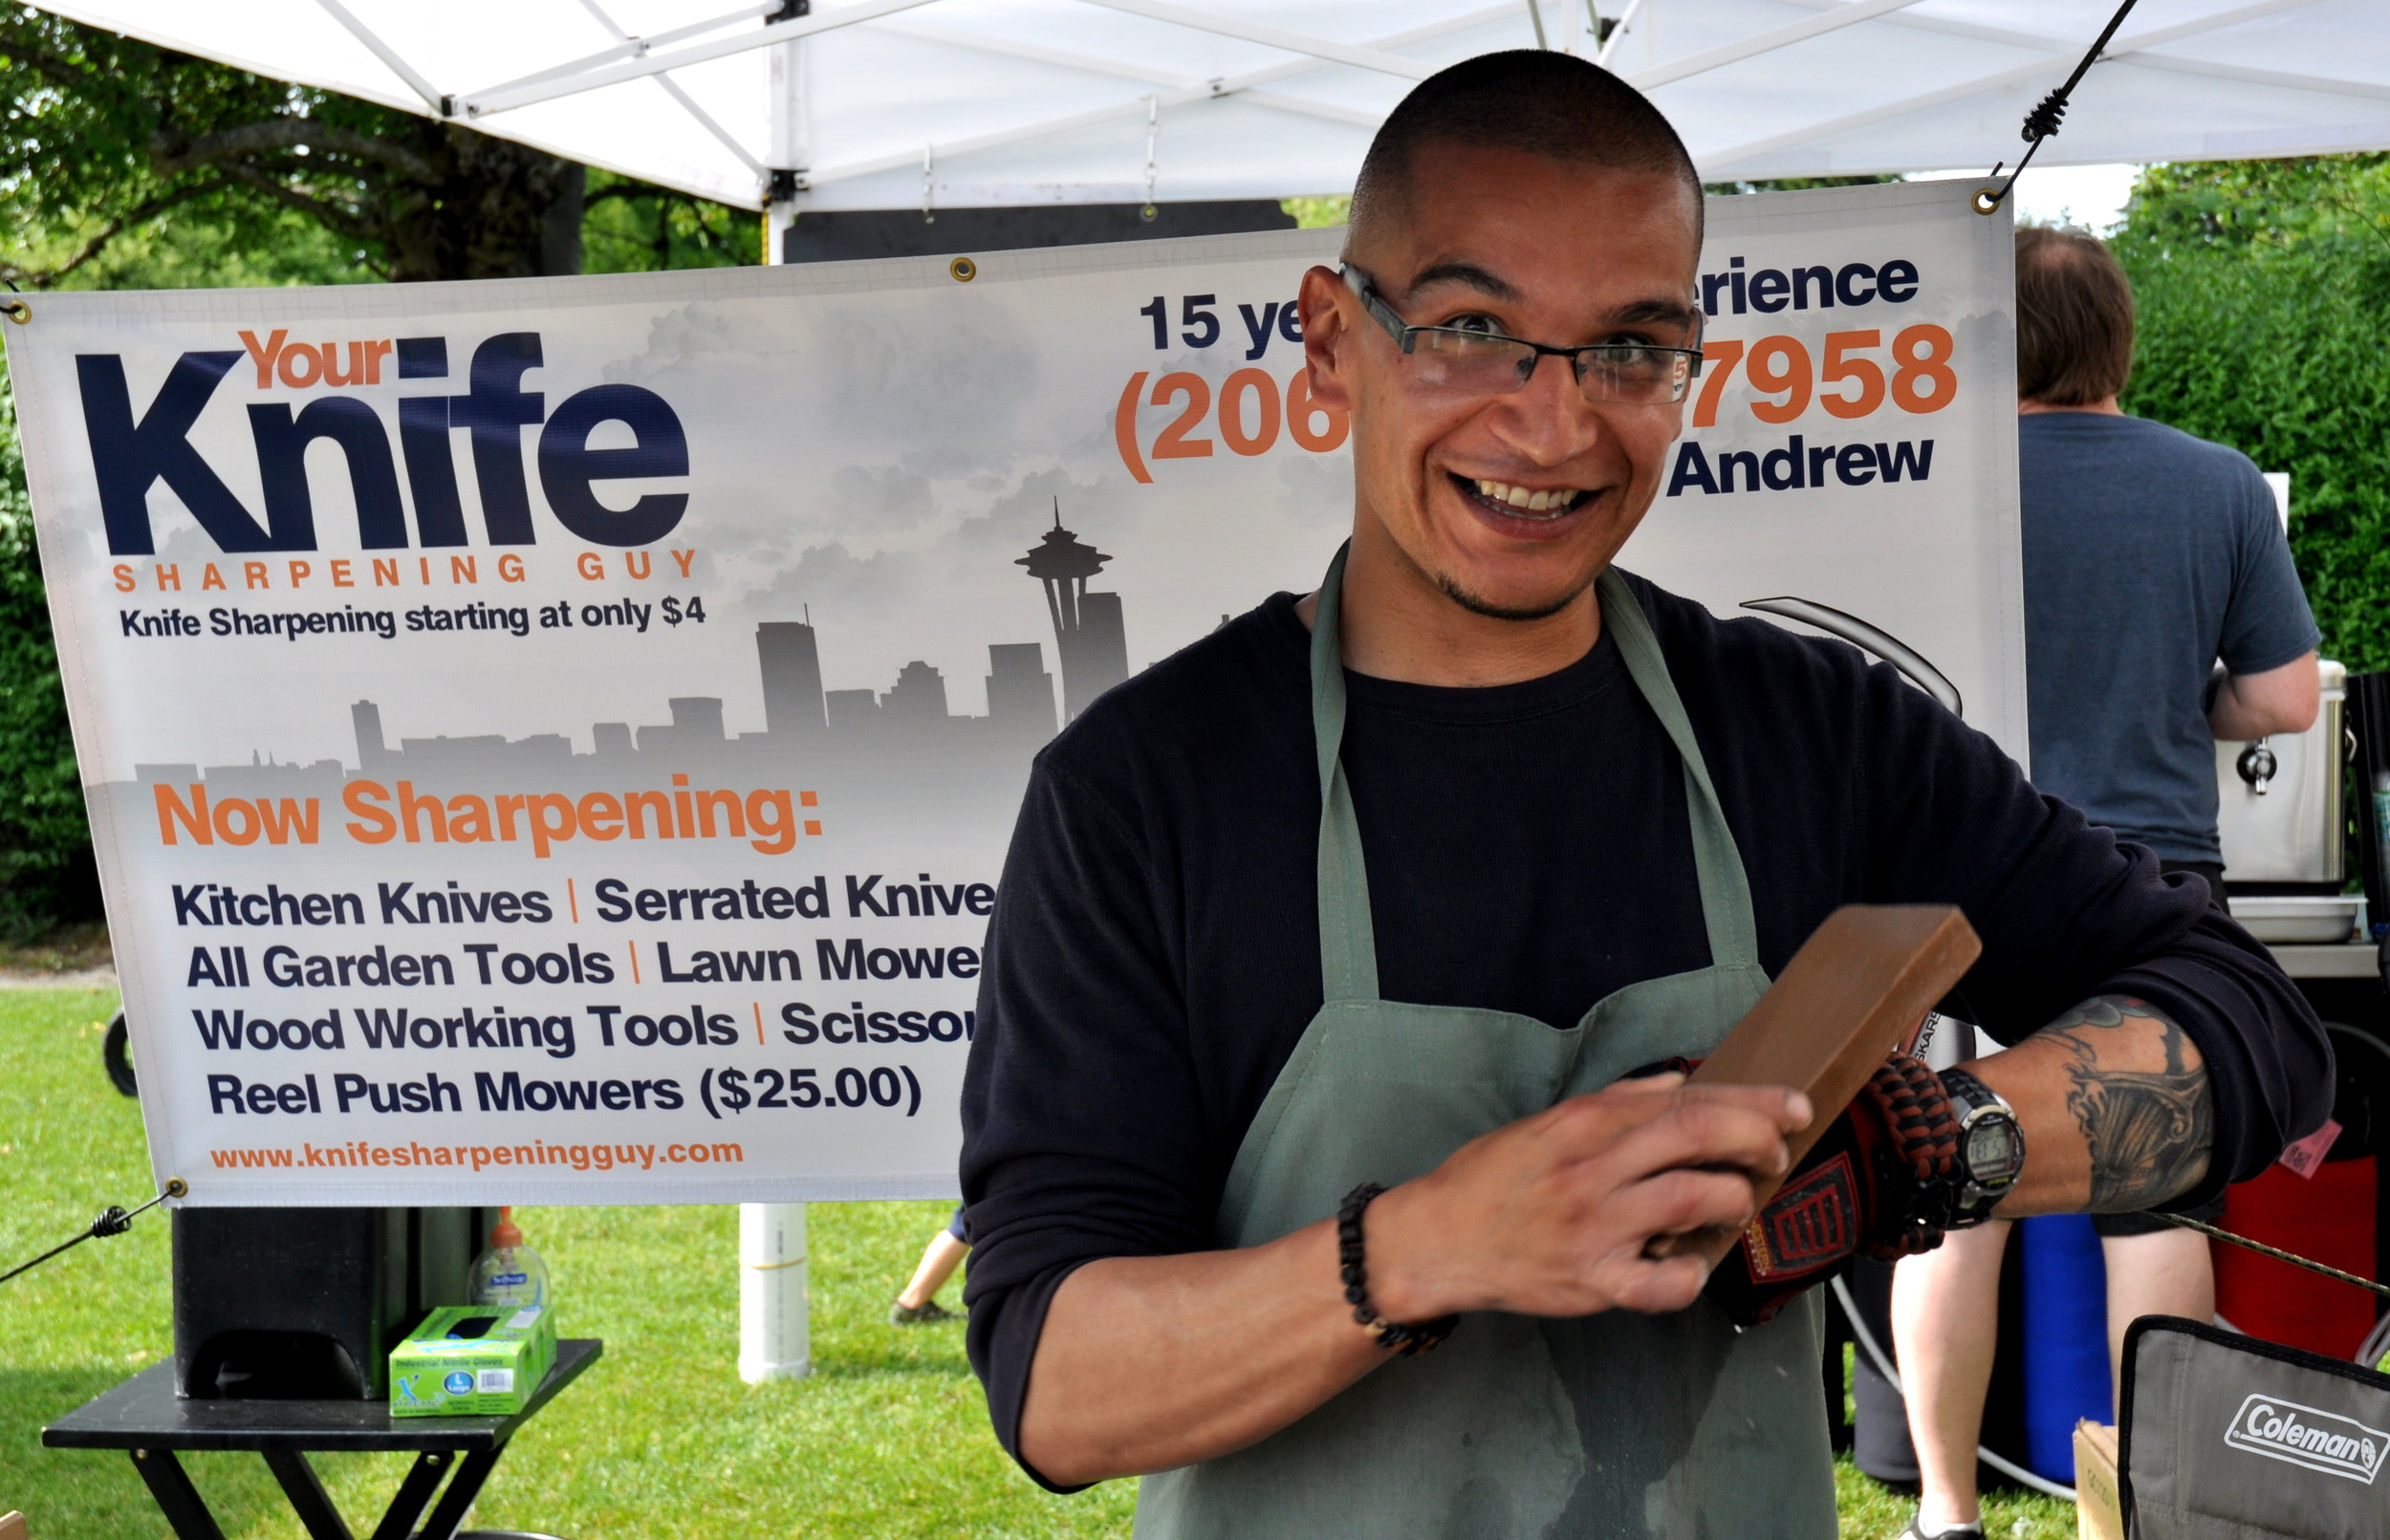 Andrew, Your Knife Sharpening Guy, sharpening knives at Wallingford Farmers Market this past summer. Photo copyright 2013 by Zachary D. Lyons.